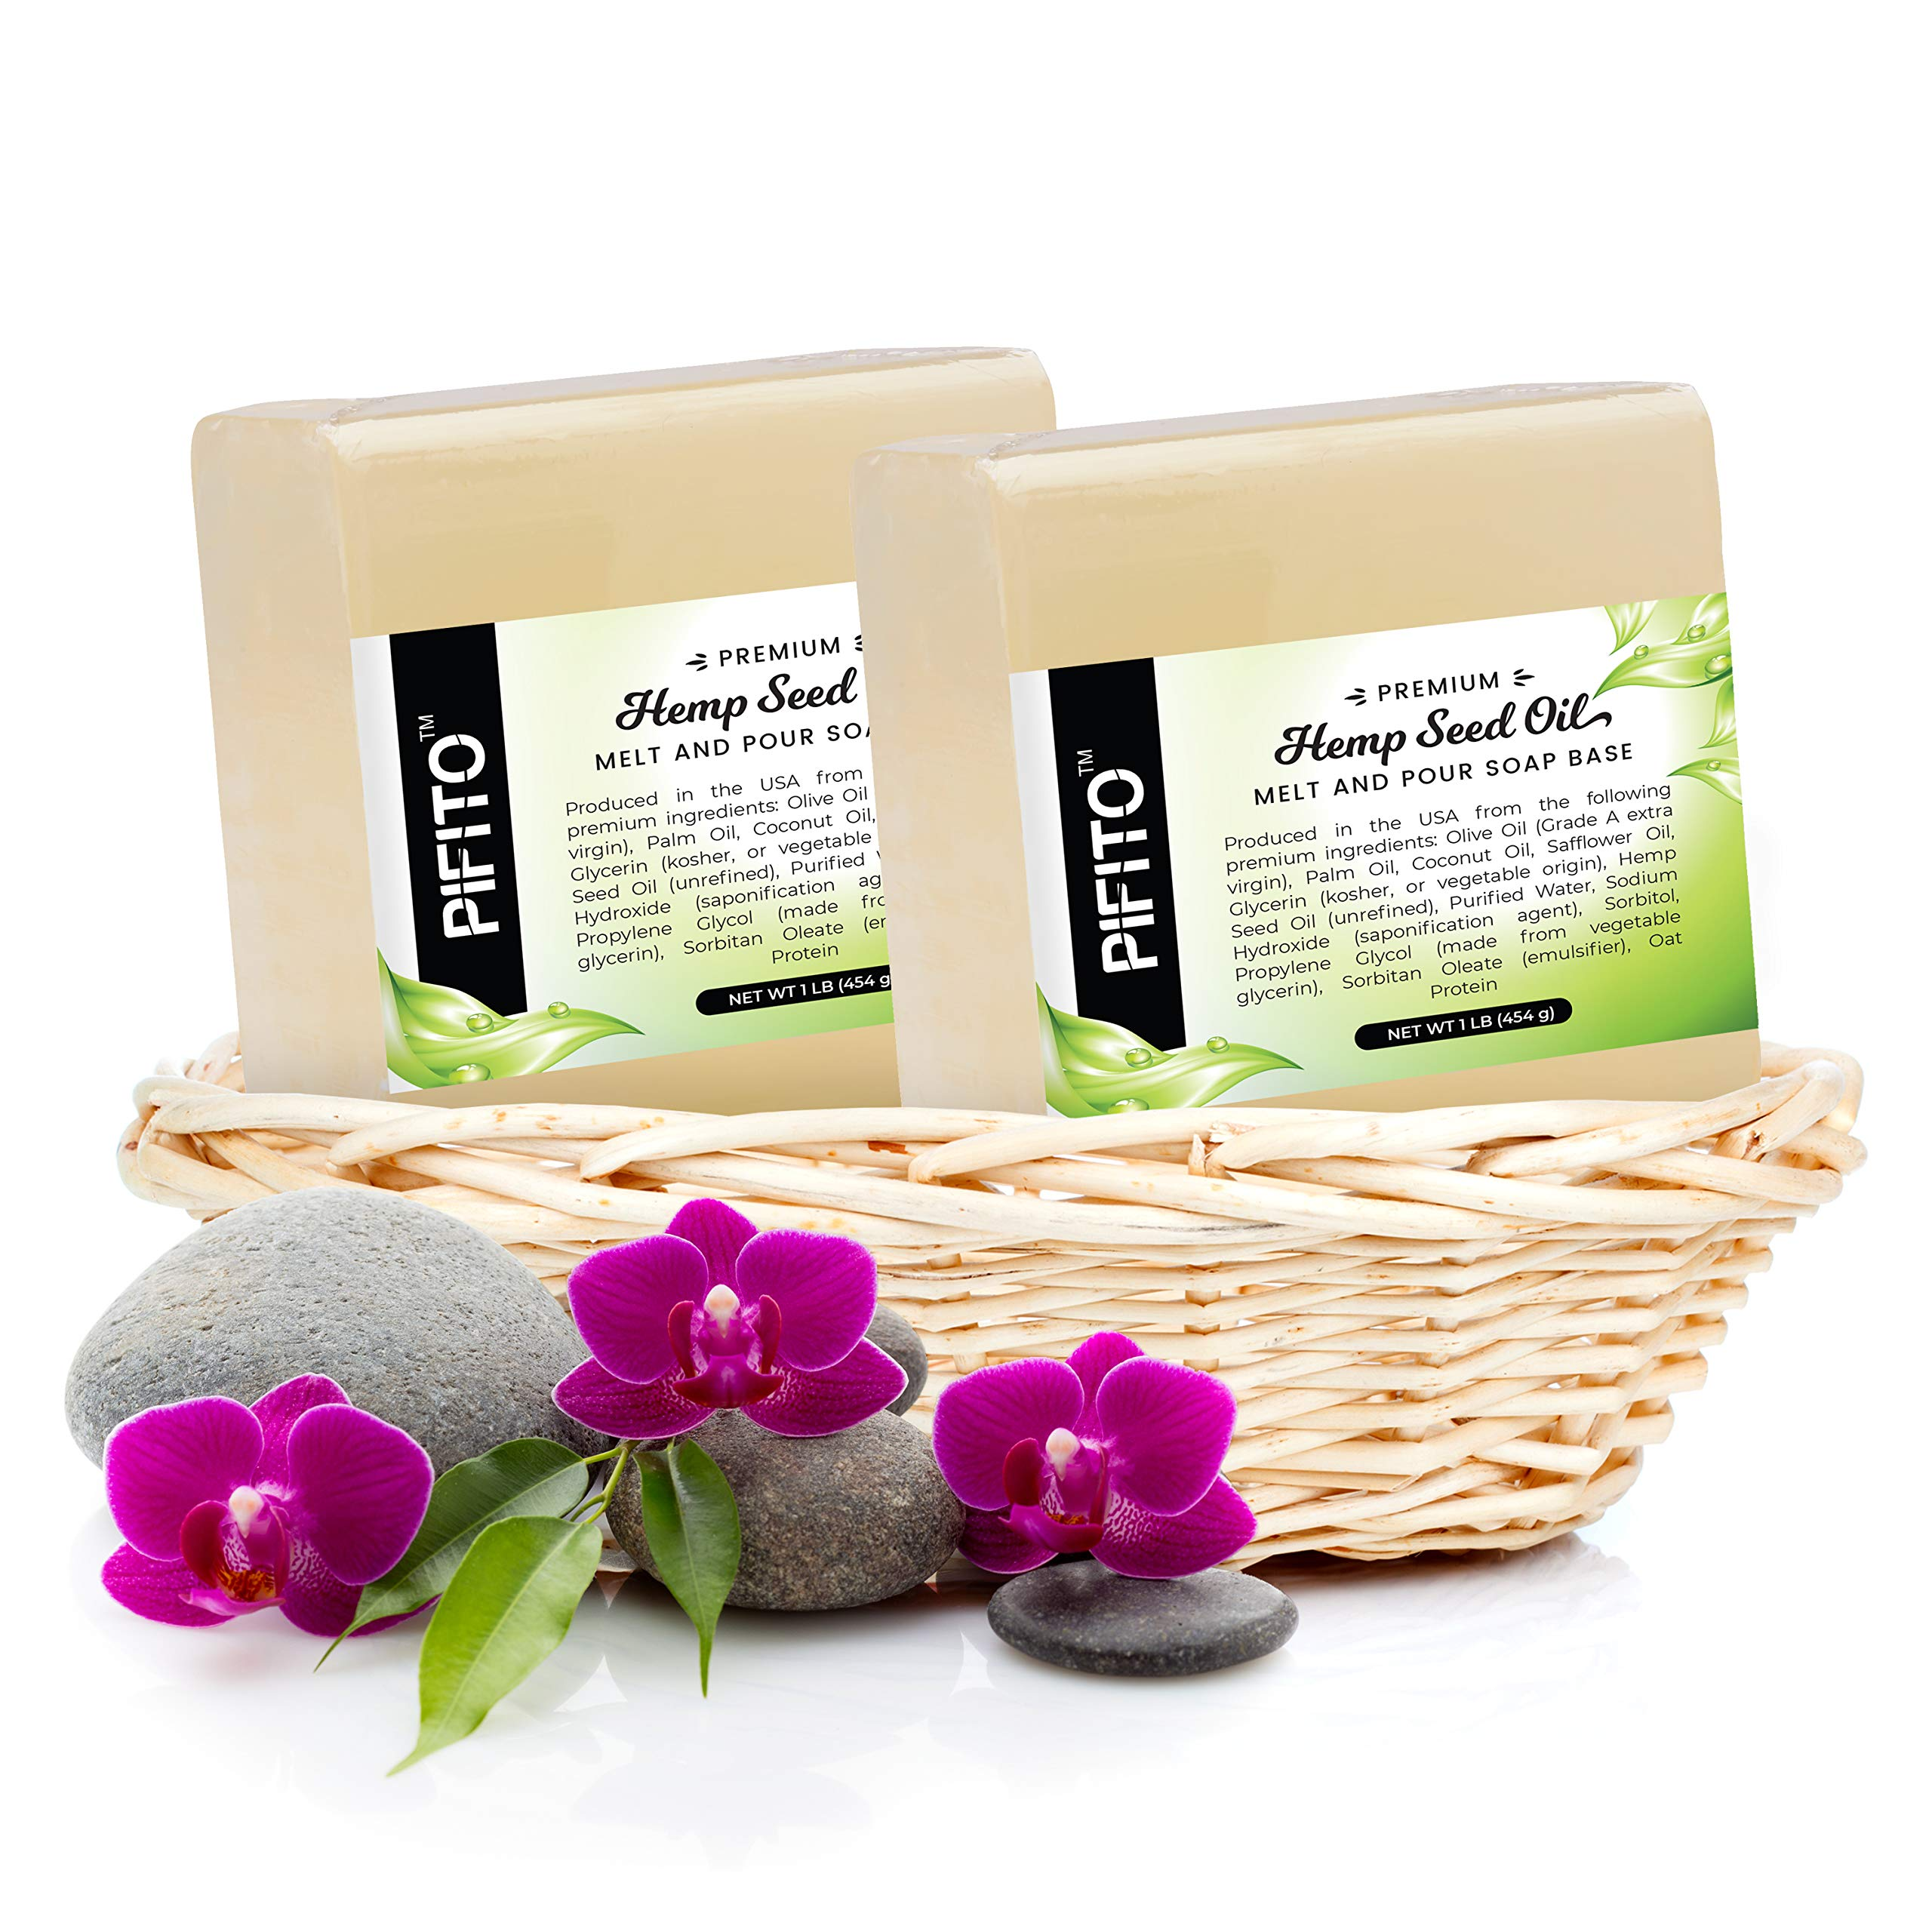 Pifito Hemp Seed Oil Melt and Pour Soap Base (2 lb) │ Premium 100% Natural Glycerin Soap Base │ Luxurious Soap Making Supplies